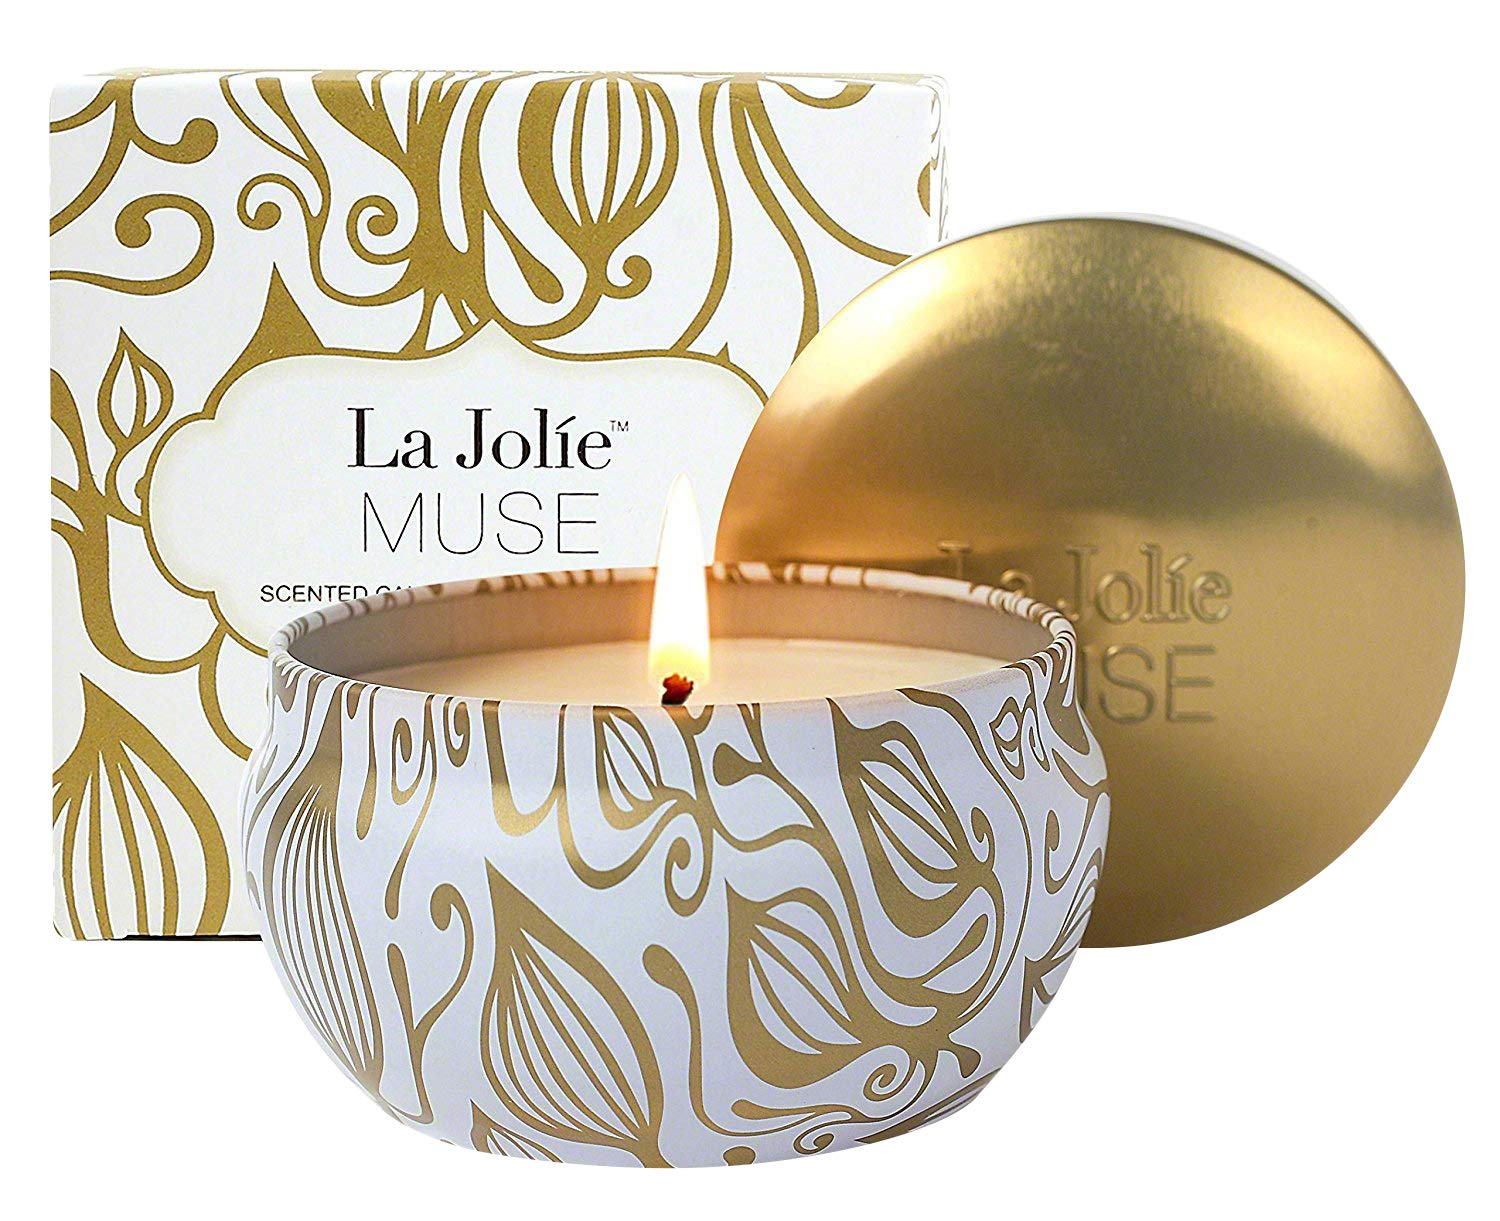 "LA JOLIE MUSE Scented Candles Vanilla Coconut Candle Soy Wax, Gold Travel Tin - ★VANILLA COCONUT CANDLE - The floral elegance of vanilla orchid gradually gives way to the intensity of the pod. Coconut takes precedence, blending with vanilla and Tonya bean to reveal a balsam Bourbon Vanilla with smooth and floral accents. ★FRAGRANT ALL OVER - This luxurious candle is the ultimate treat with its sweet floral notes that do not lose its fragrance no matter how long you burn it. ★LOVELY PACKAGING - It comes with 1 Candle: 2.48""H x 3.6""D. Burn for 40-45 hours. This beautiful candle comes boxed with remarkable detailing. - living-room-decor, living-room, candles - 71ARiBHwDjL -"